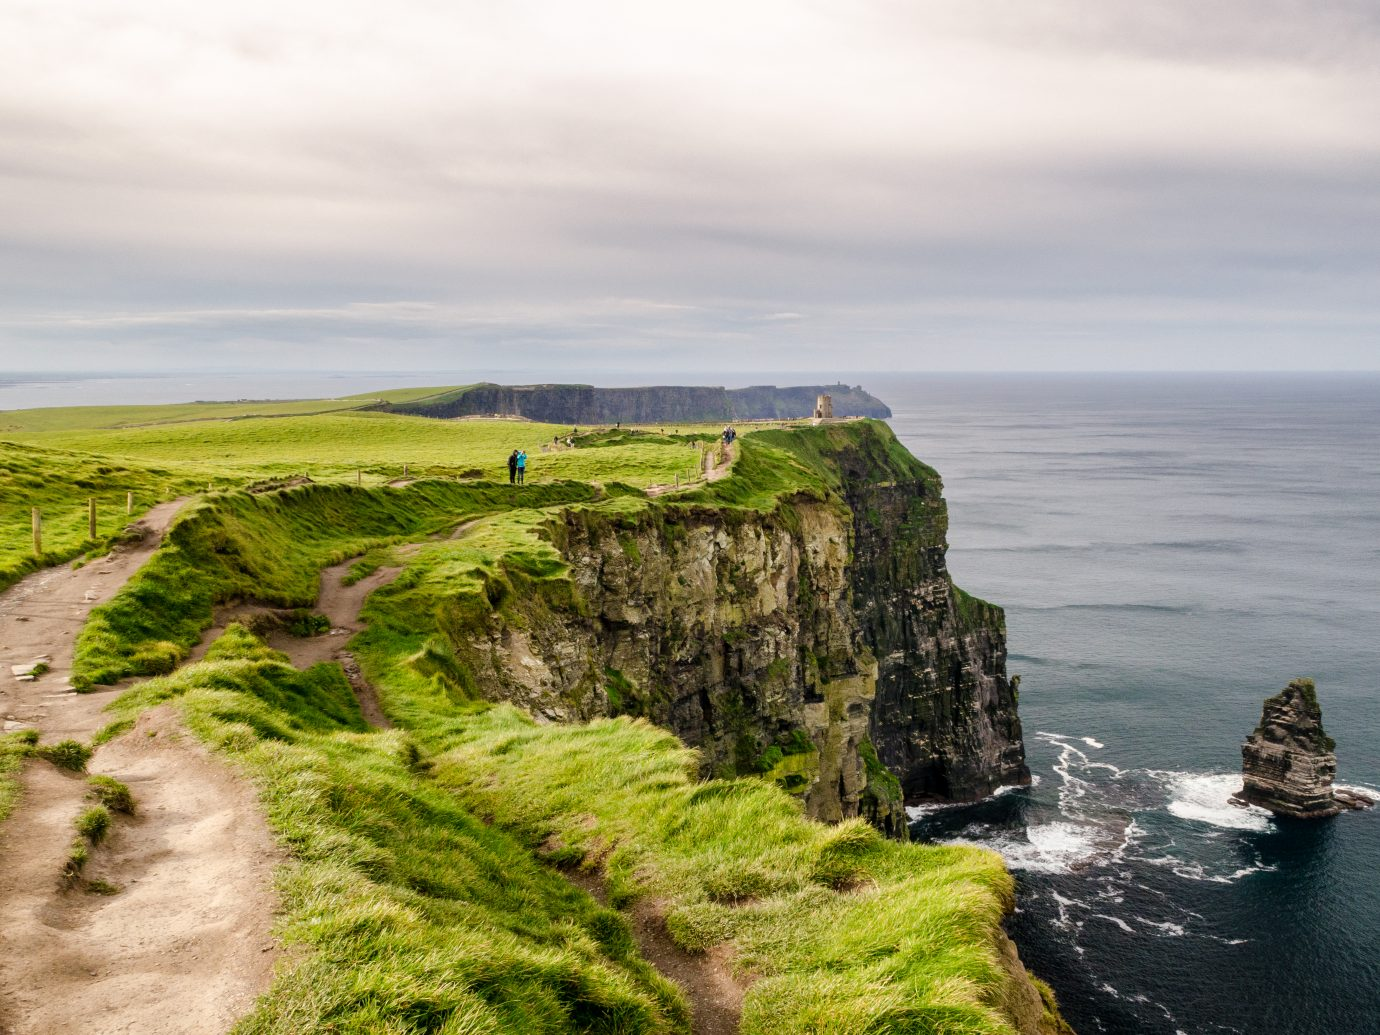 People walking along the edge of Ireland's Cliffs of Moher